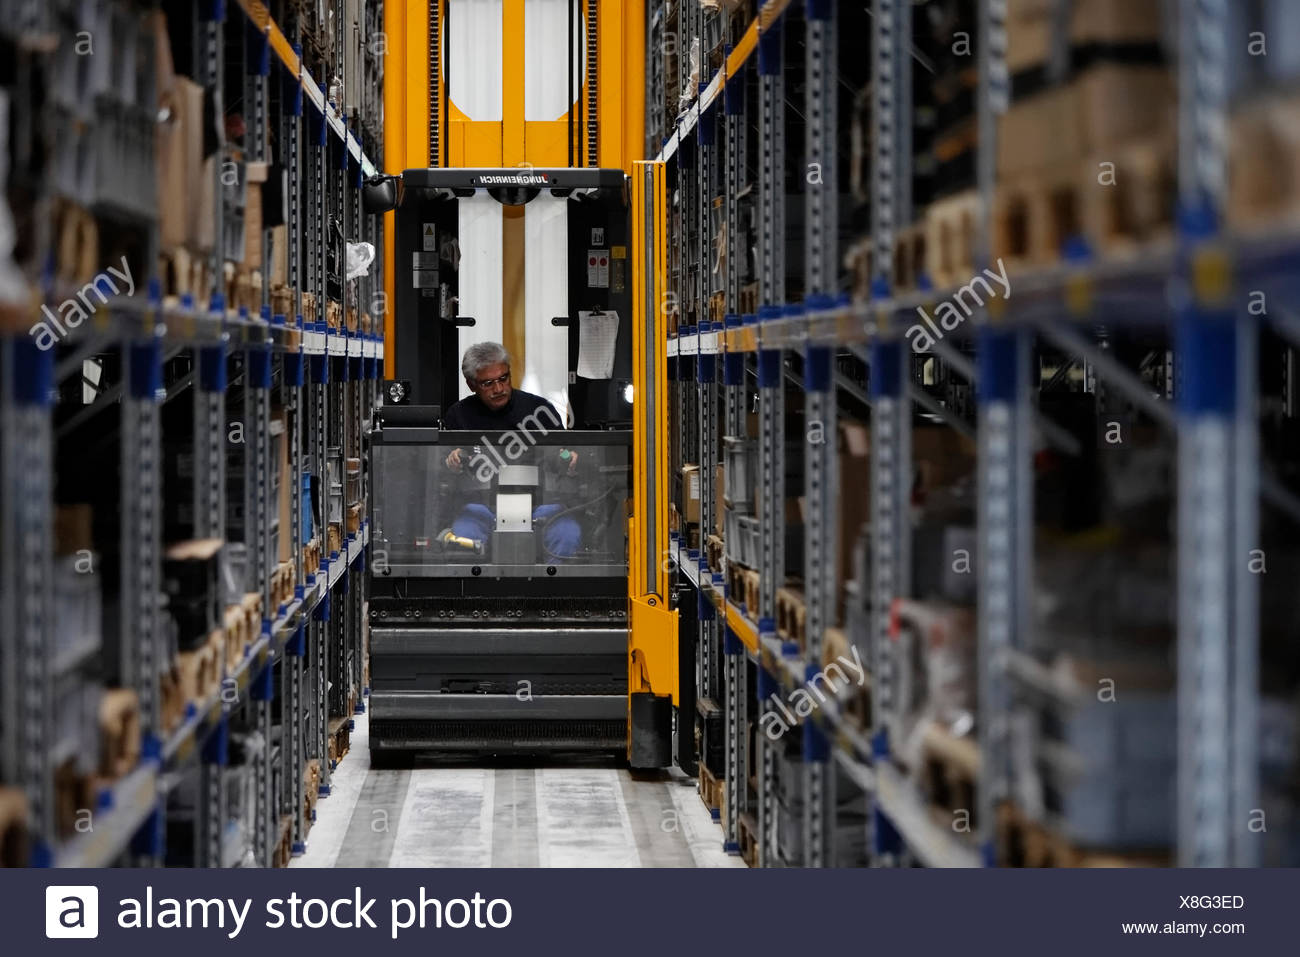 Computer Stores Stock Photos & Computer Stores Stock Images - Alamy